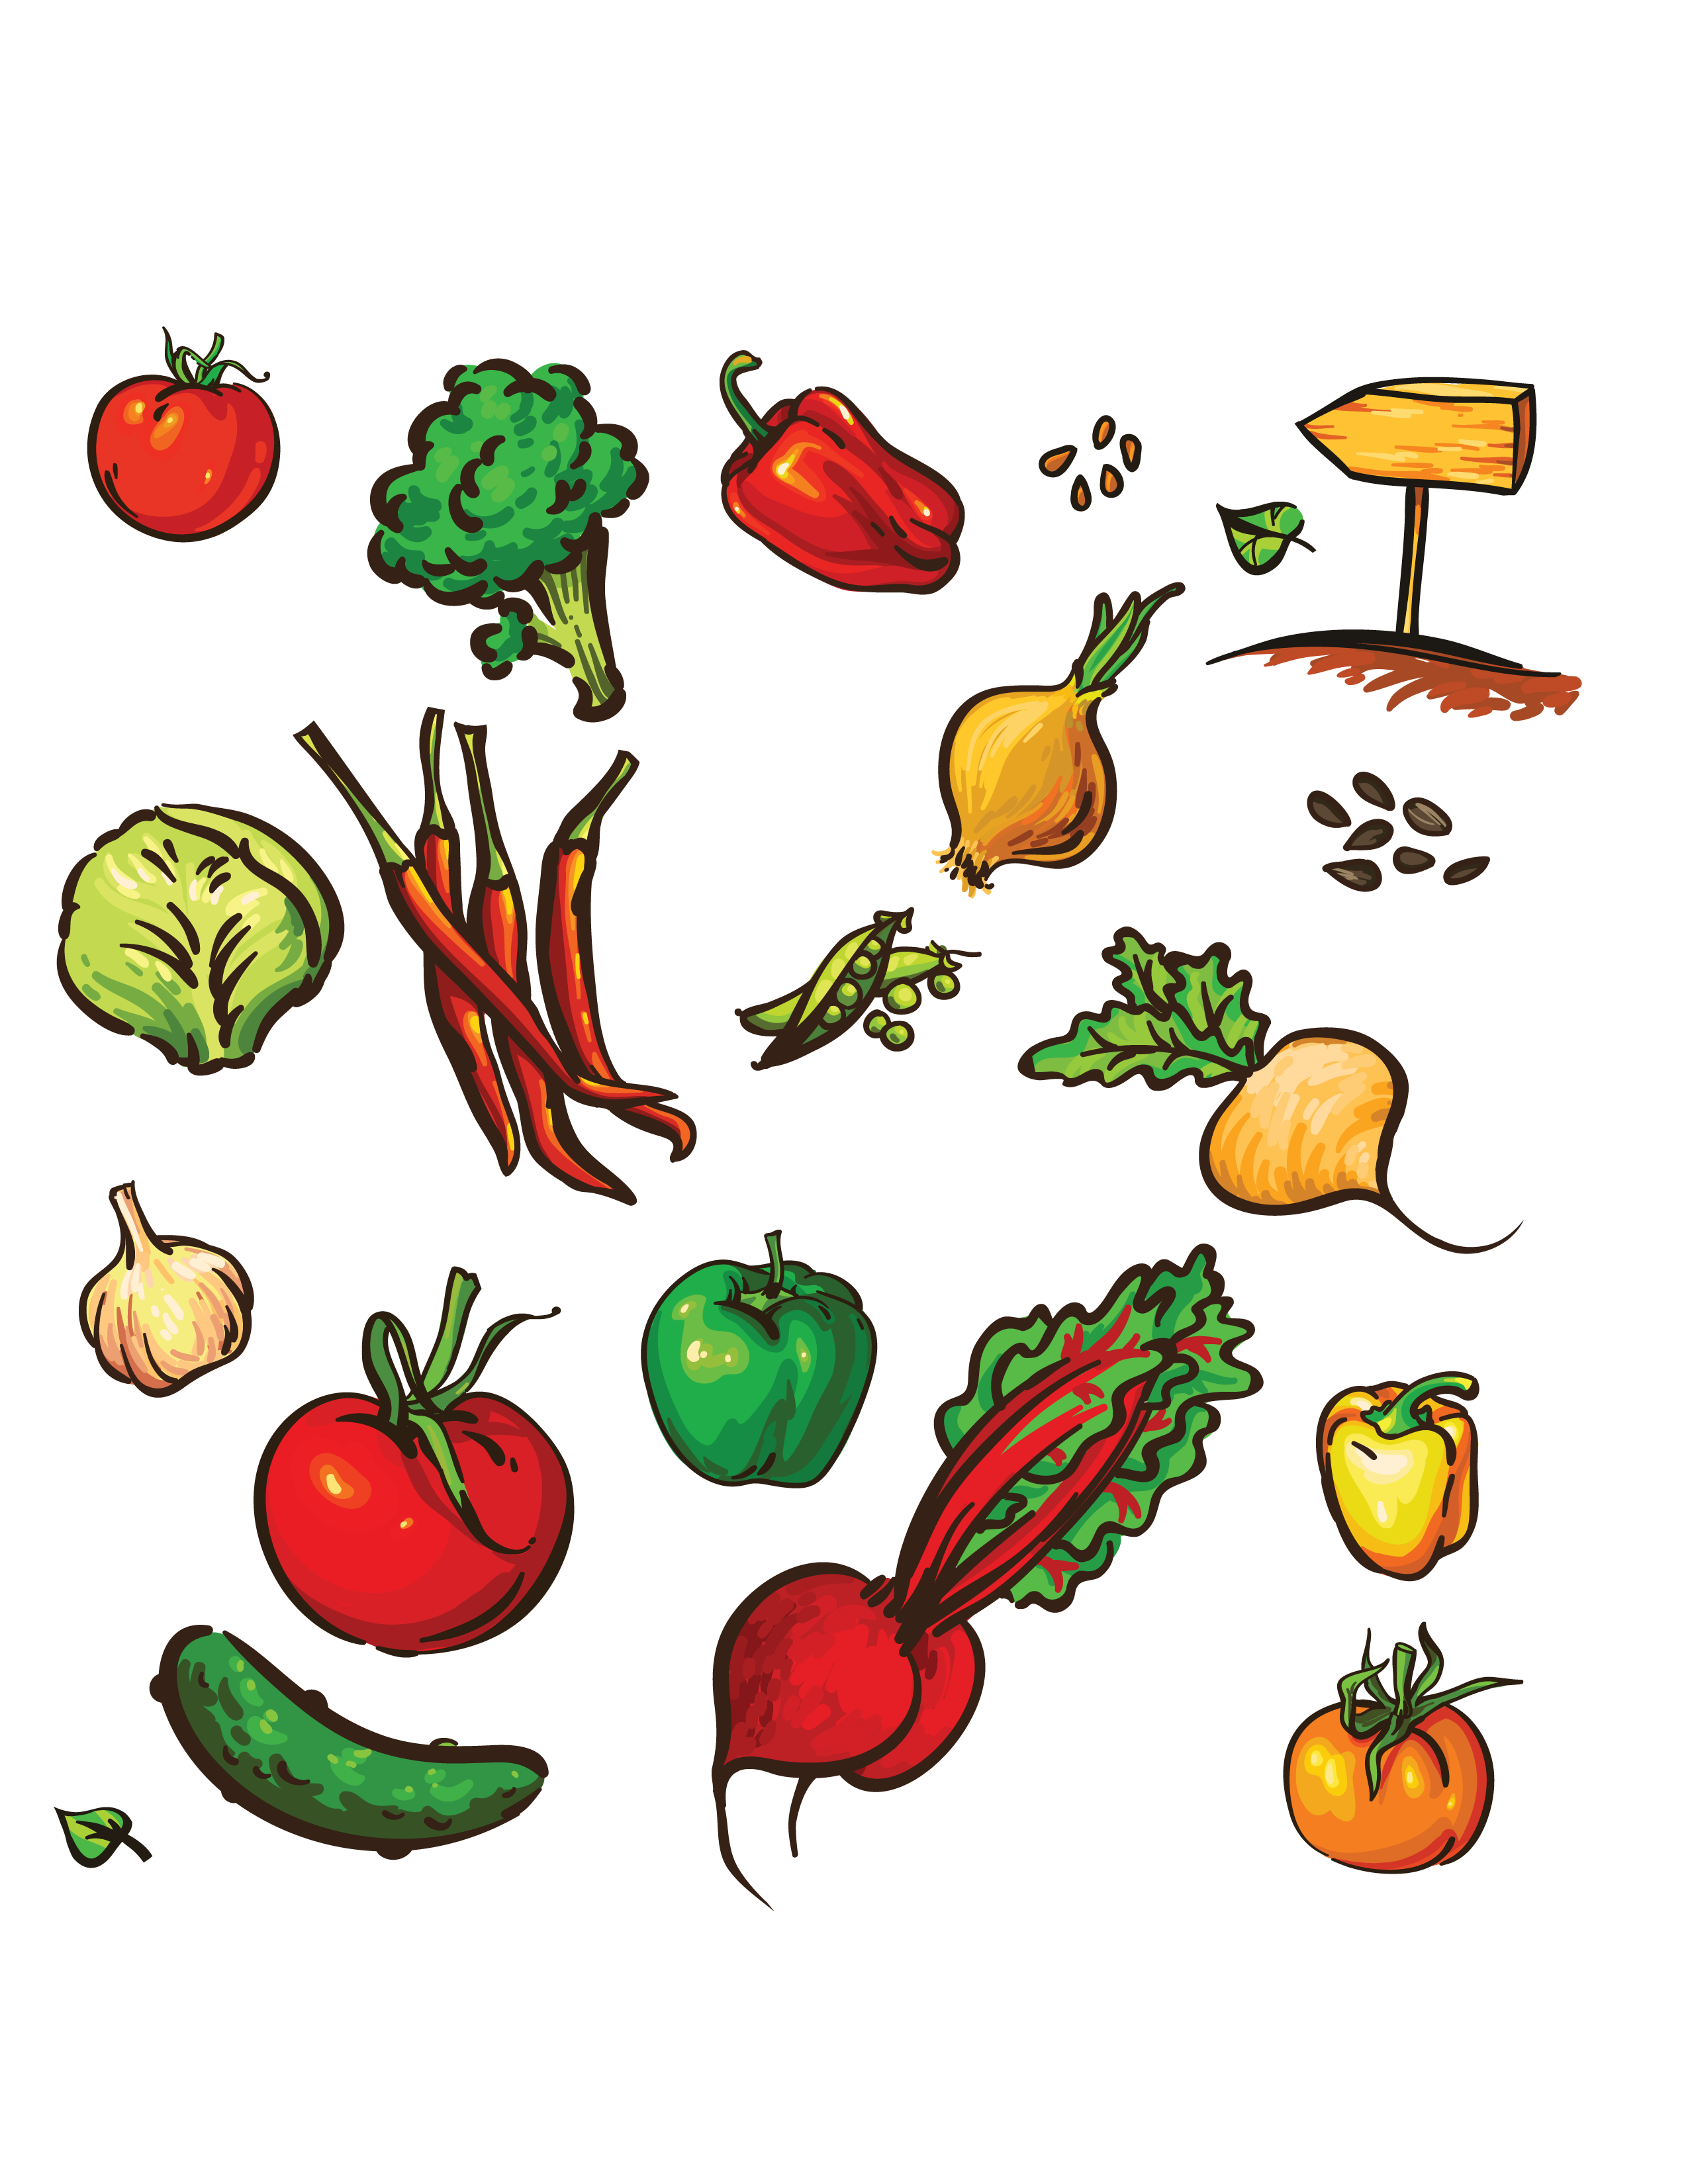 Drawing vegetable group. Diet full of fruits